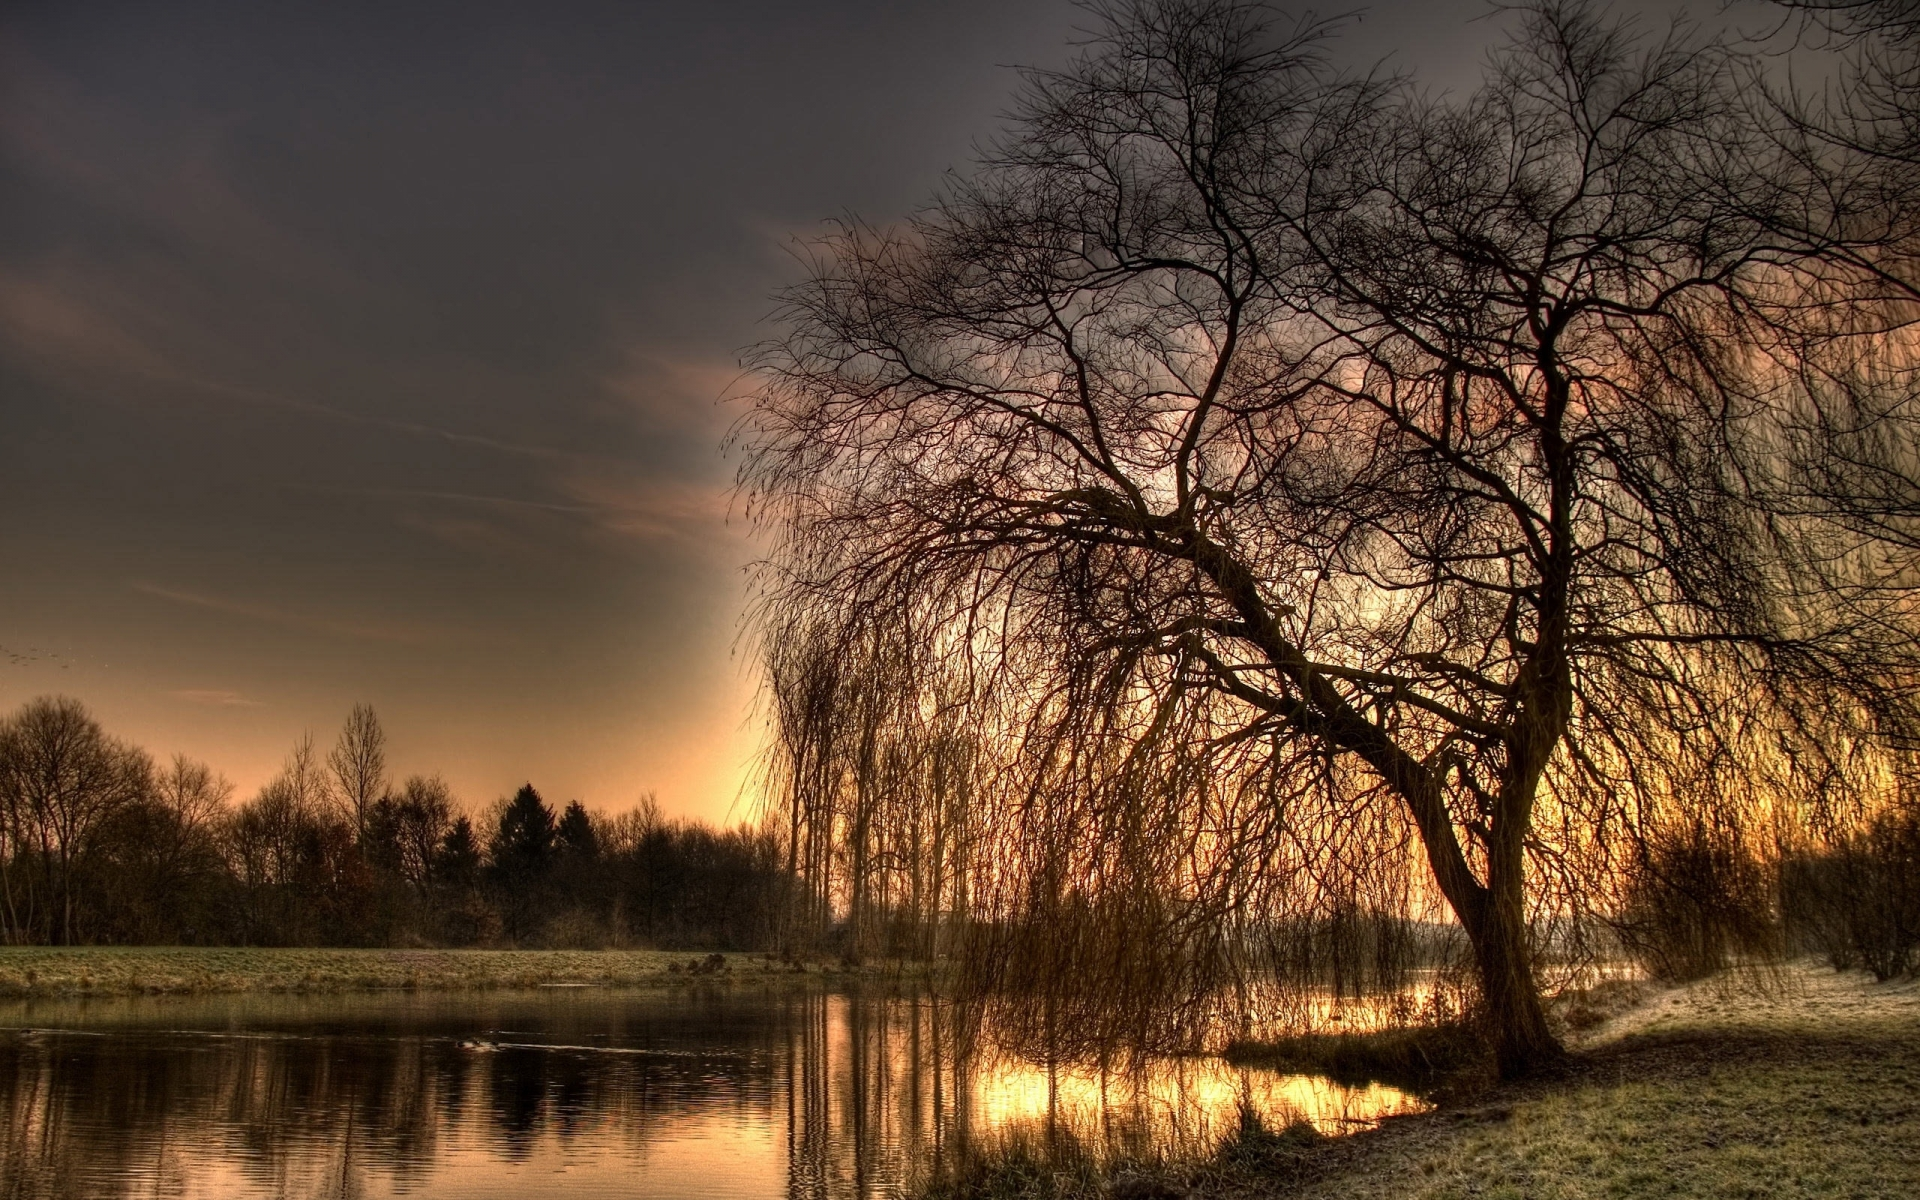 Weeping Willow Tree Background wallpaper   793529 1920x1200